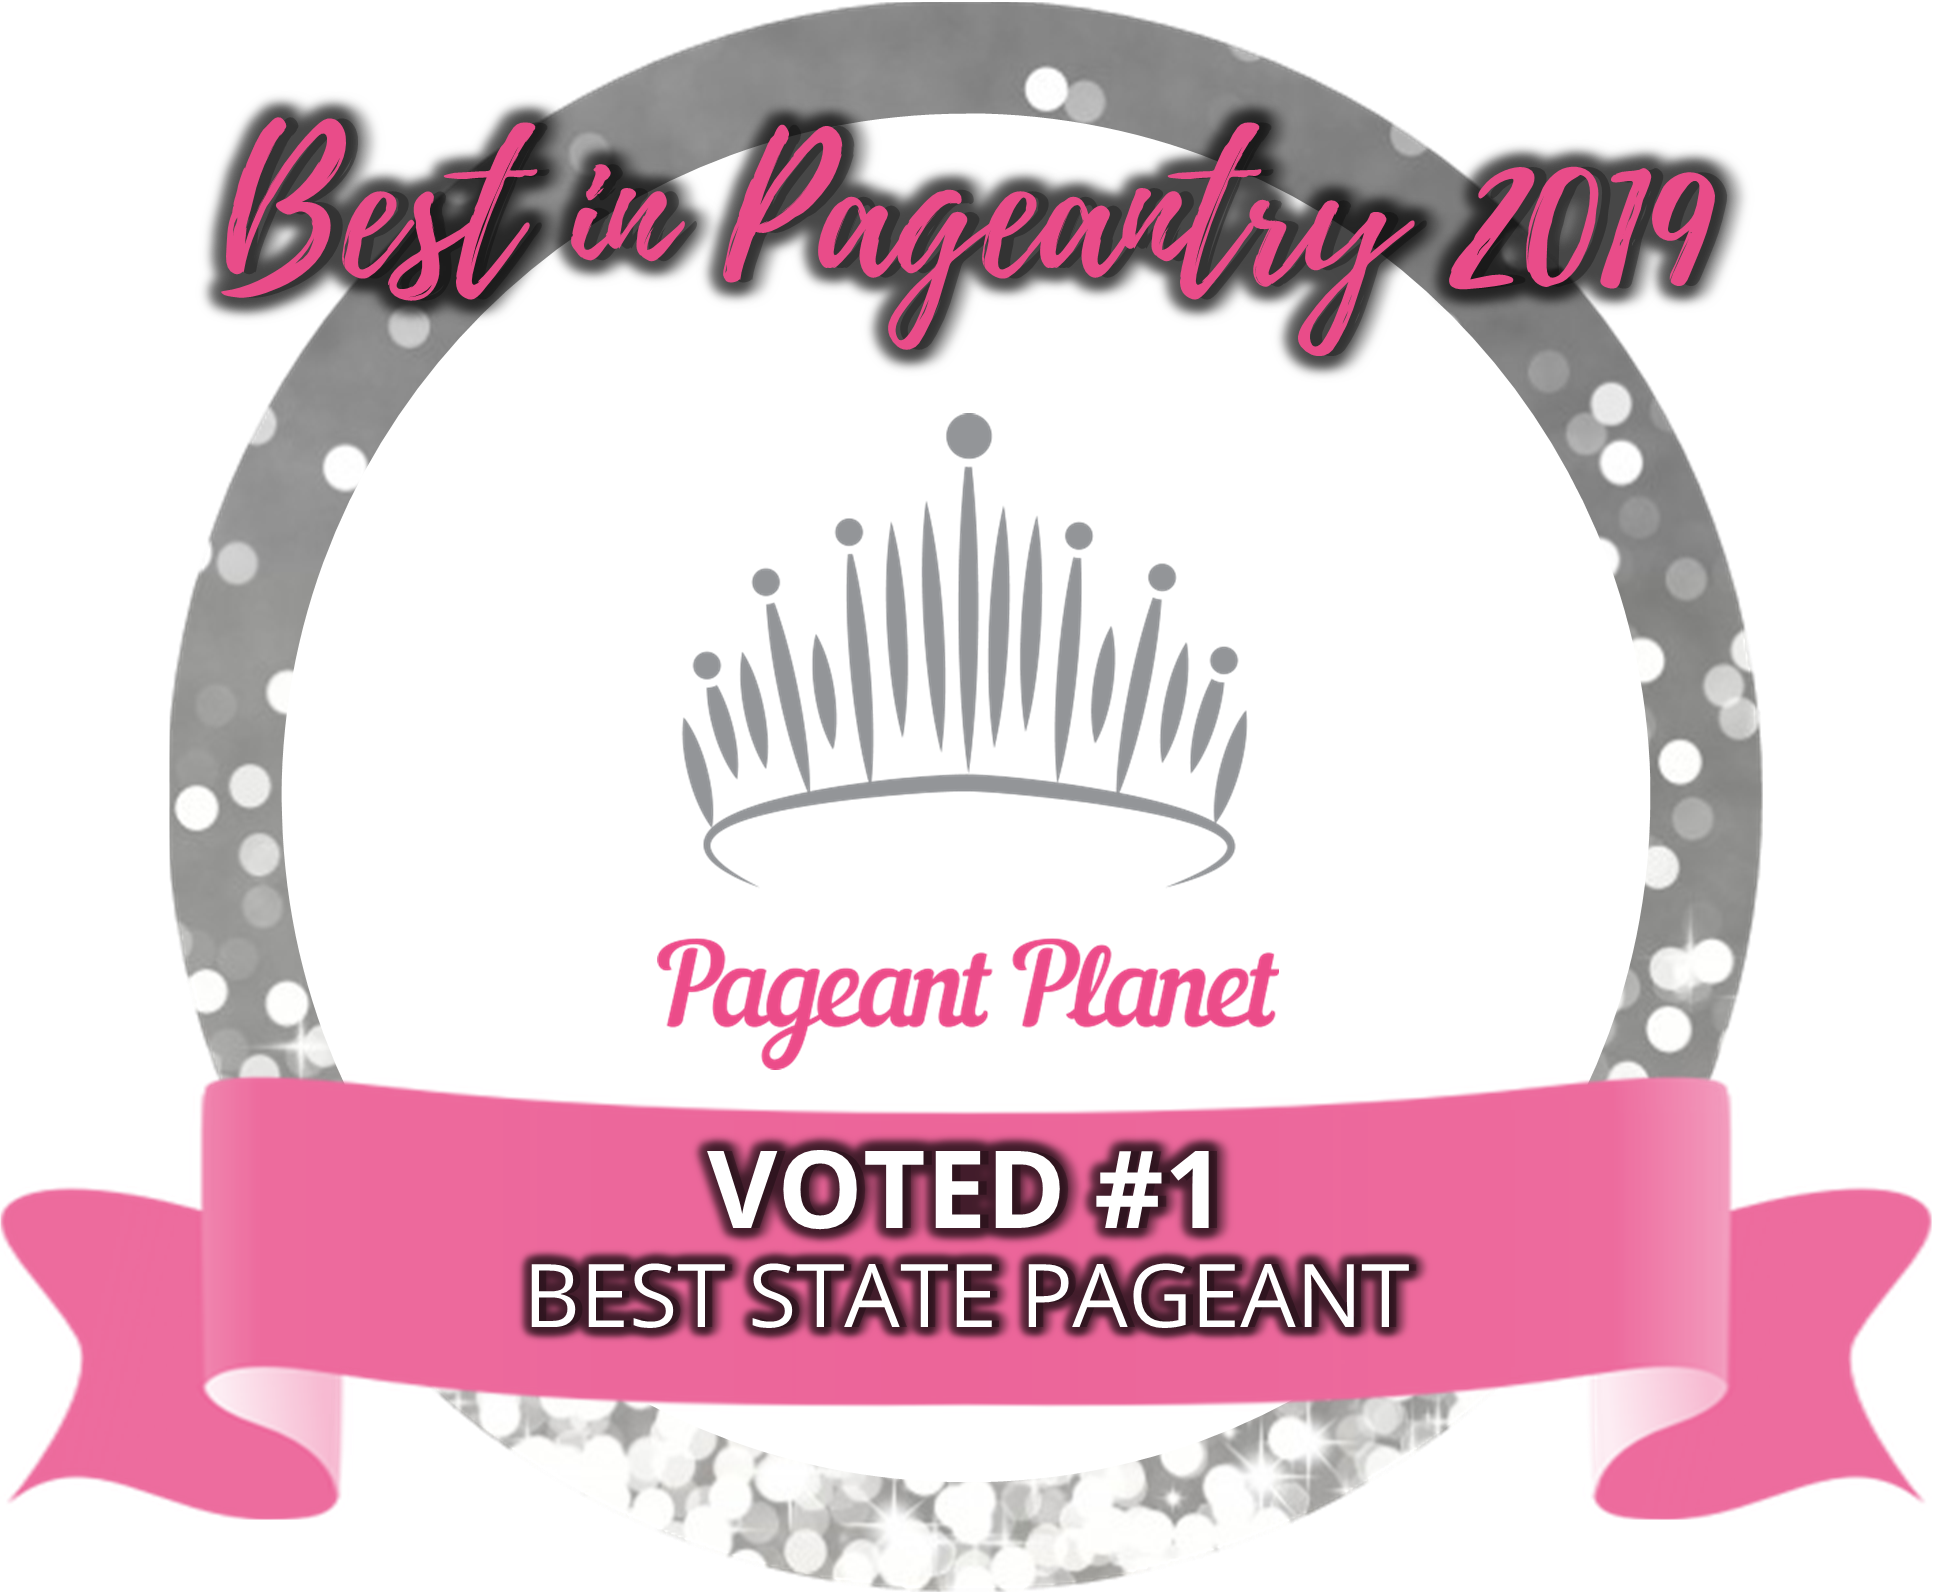 #1 Best State Pageant of 2019